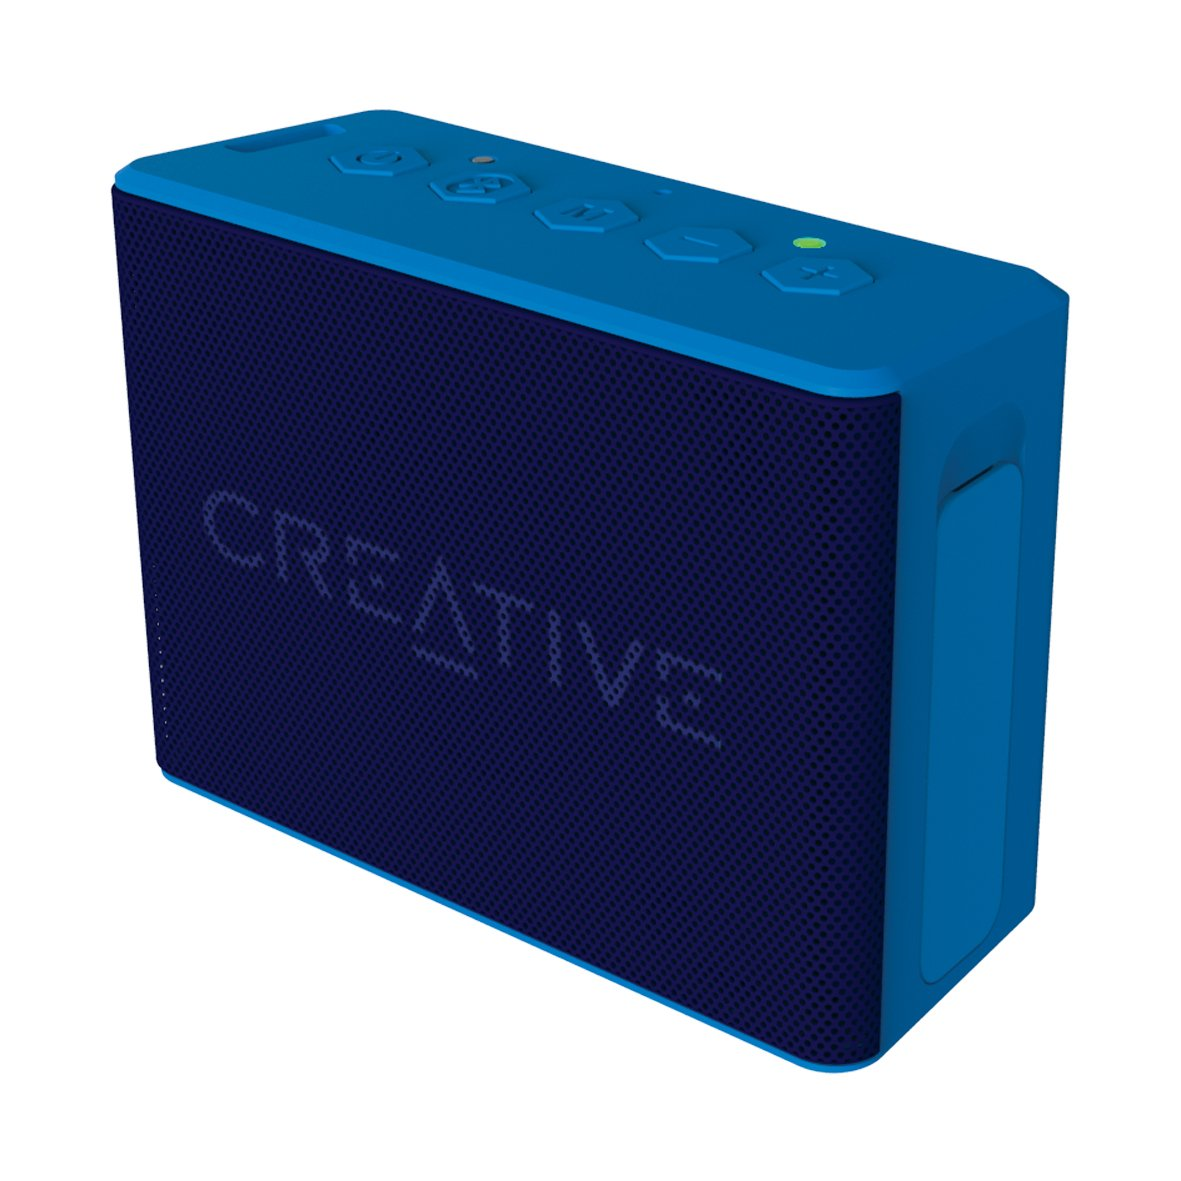 Creative Labs MUVO 2c Stereo Rectangle Blue